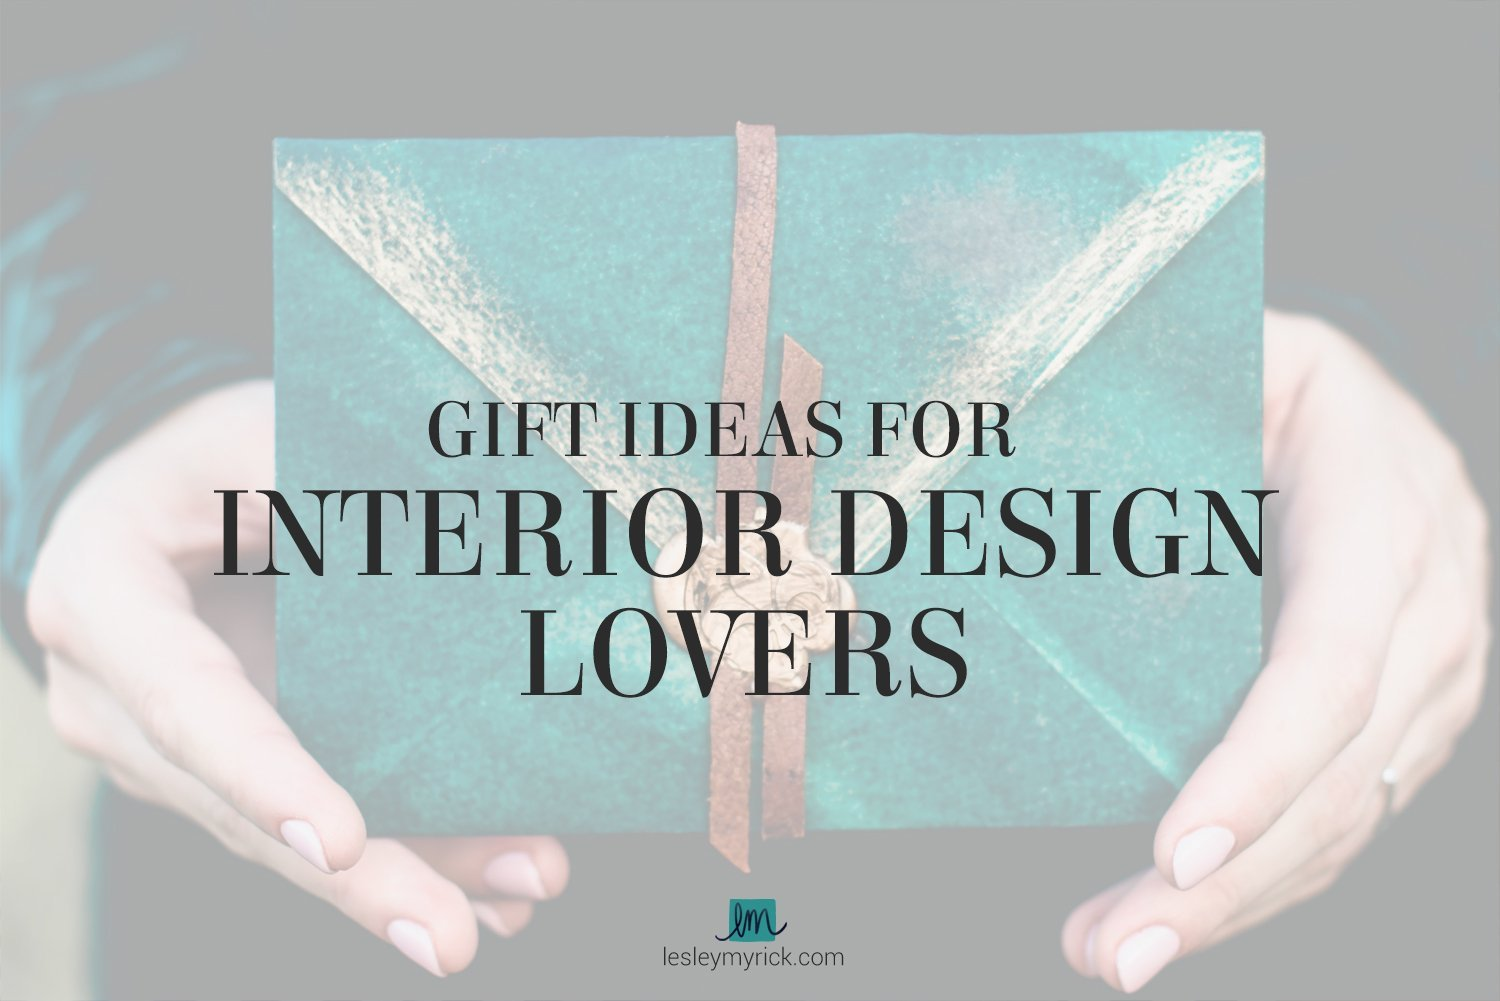 Gift ideas for interior design lovers